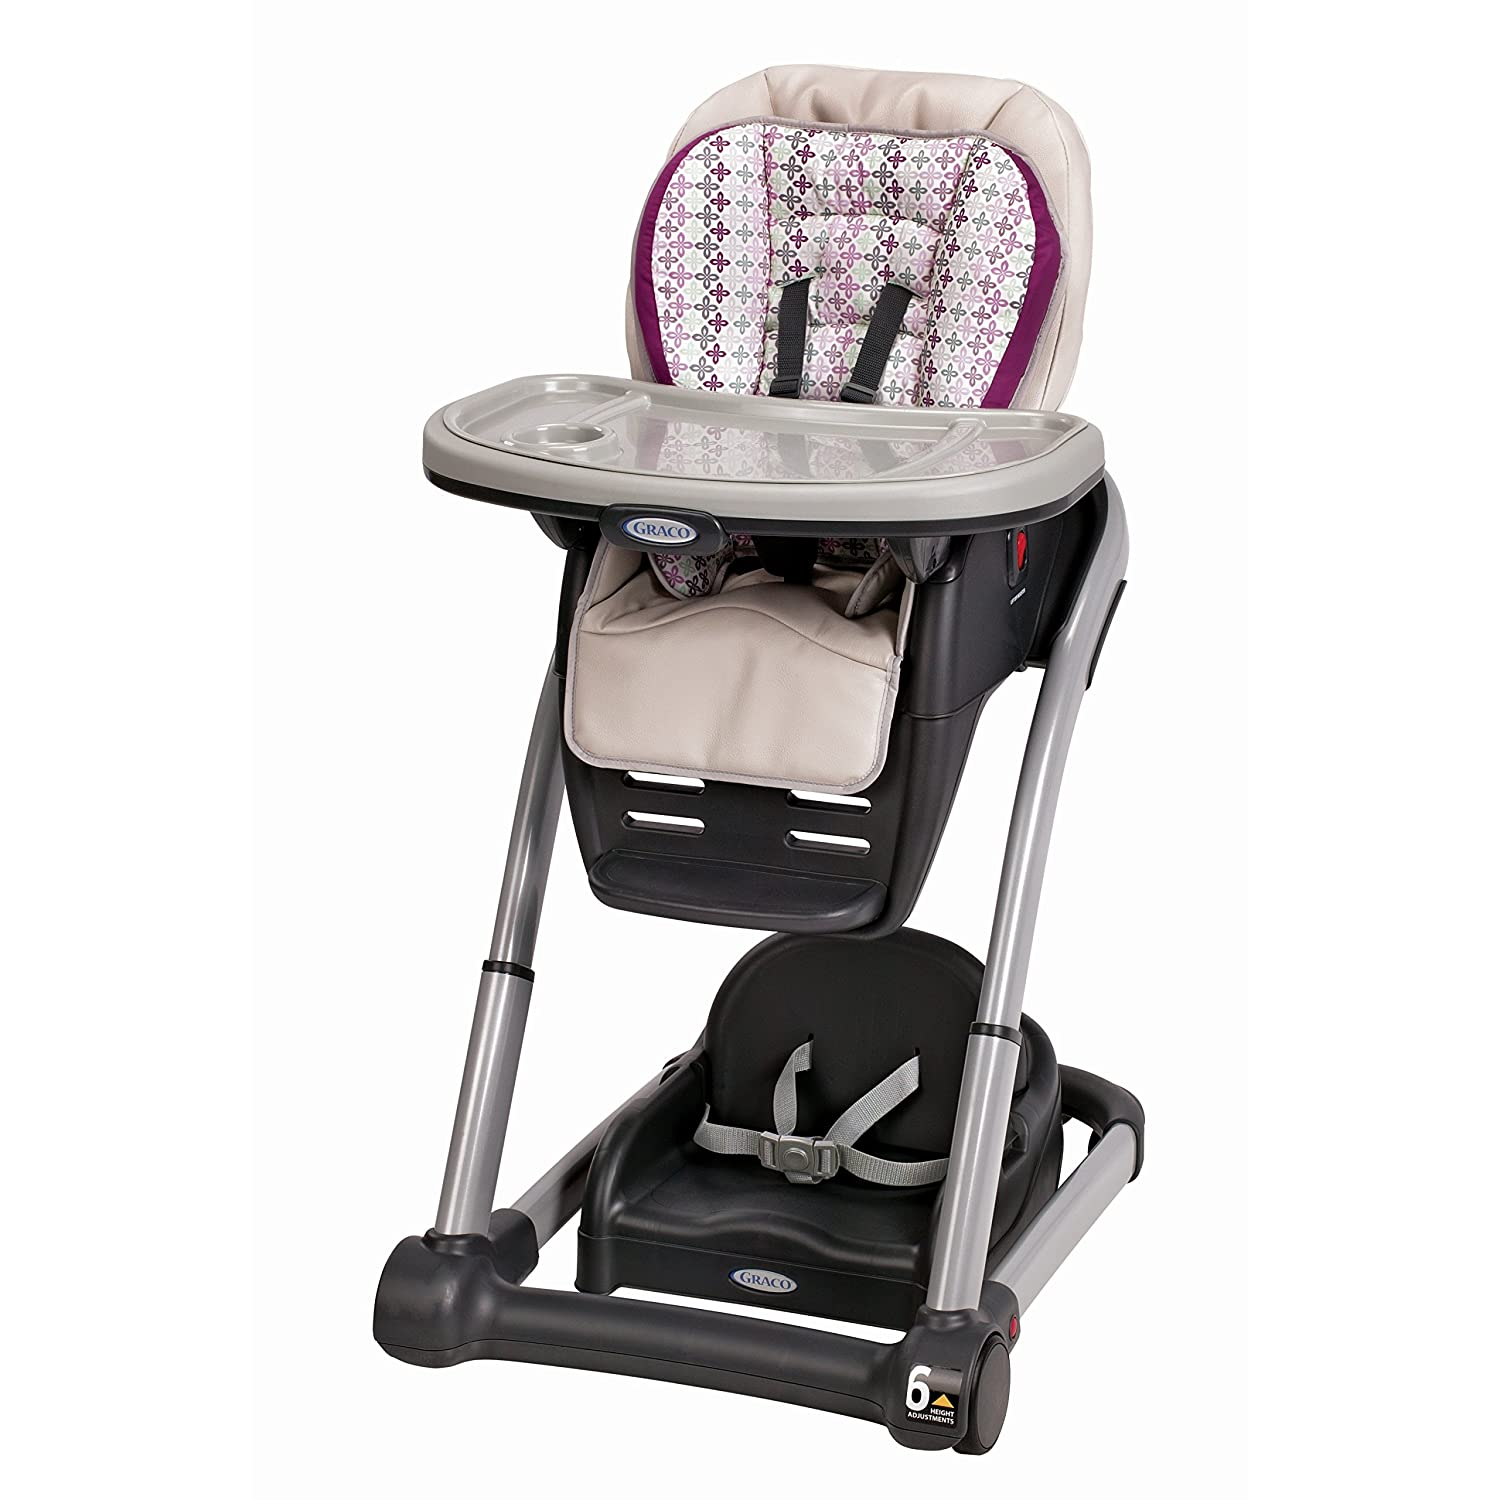 graco high chair coupon lifeform office highly rated blossom 4 in 1 seating system nyssa is